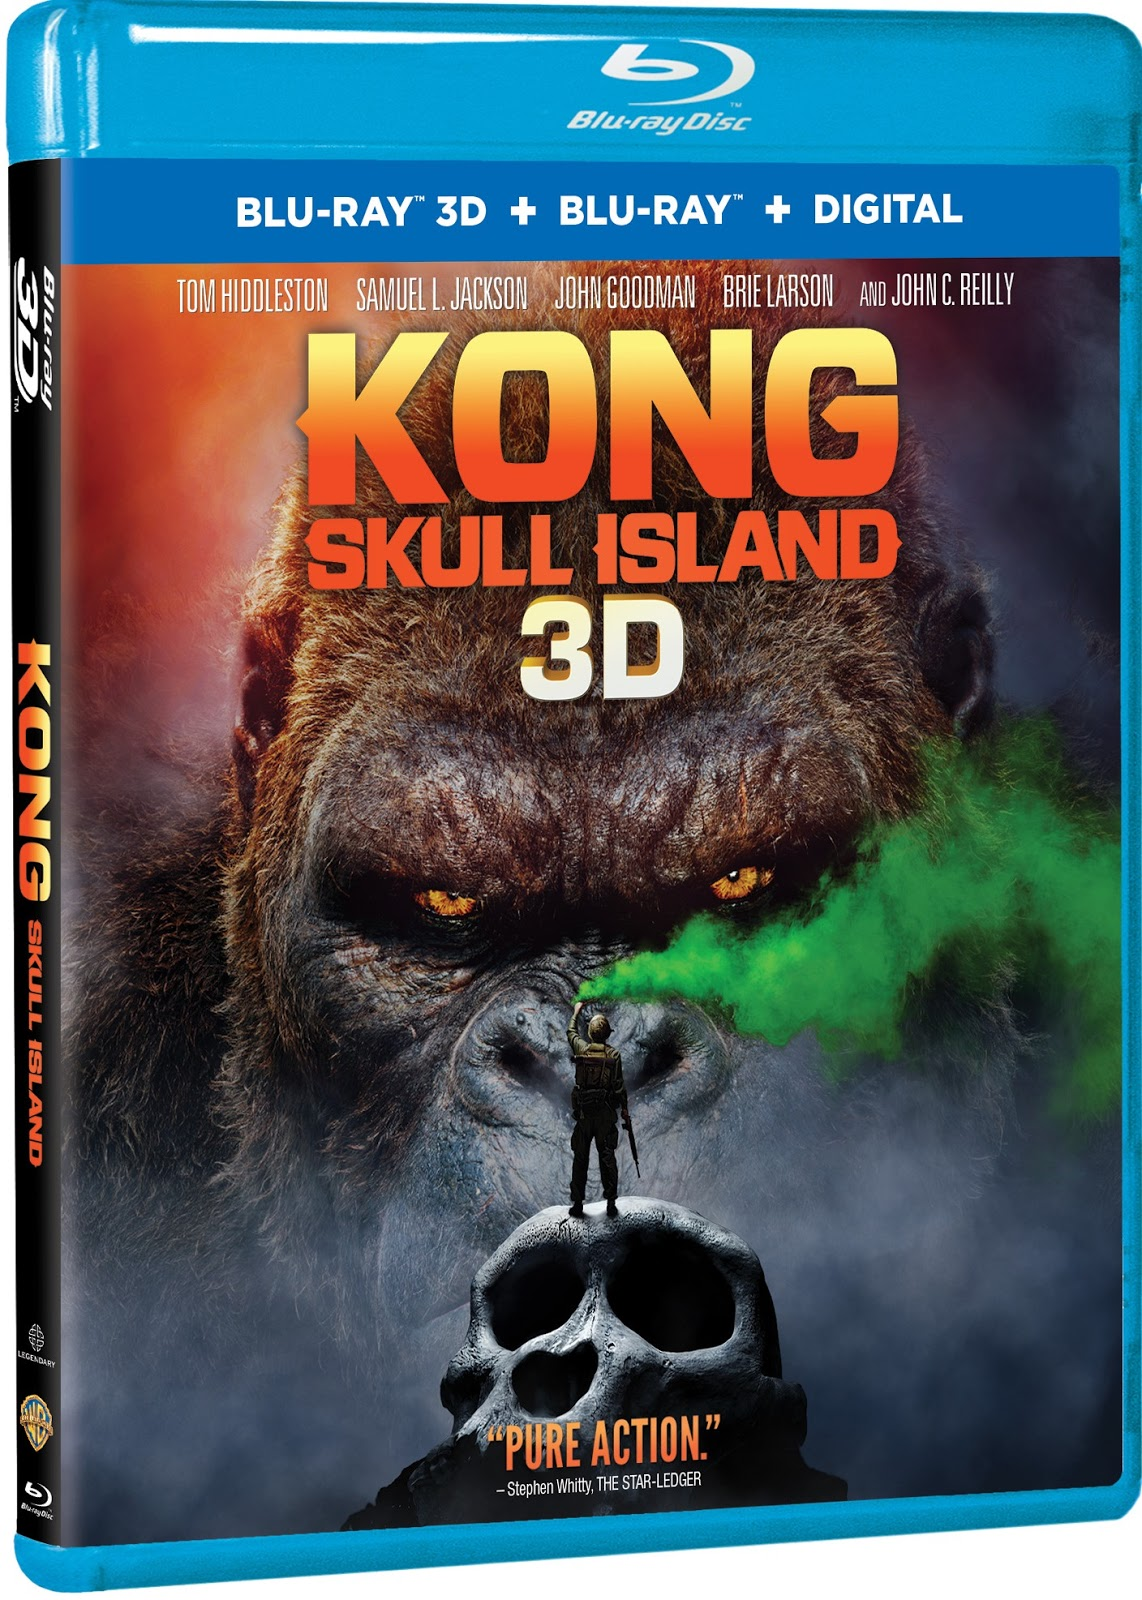 Kong skull island soundtrack on cd - Witness The Rise Of The King When Kong Skull Island Arrives Onto Ultra Hd Blu Ray Blu Ray 3d Combo Pack Blu Ray Combo Pack Dvd And Digital From Warner